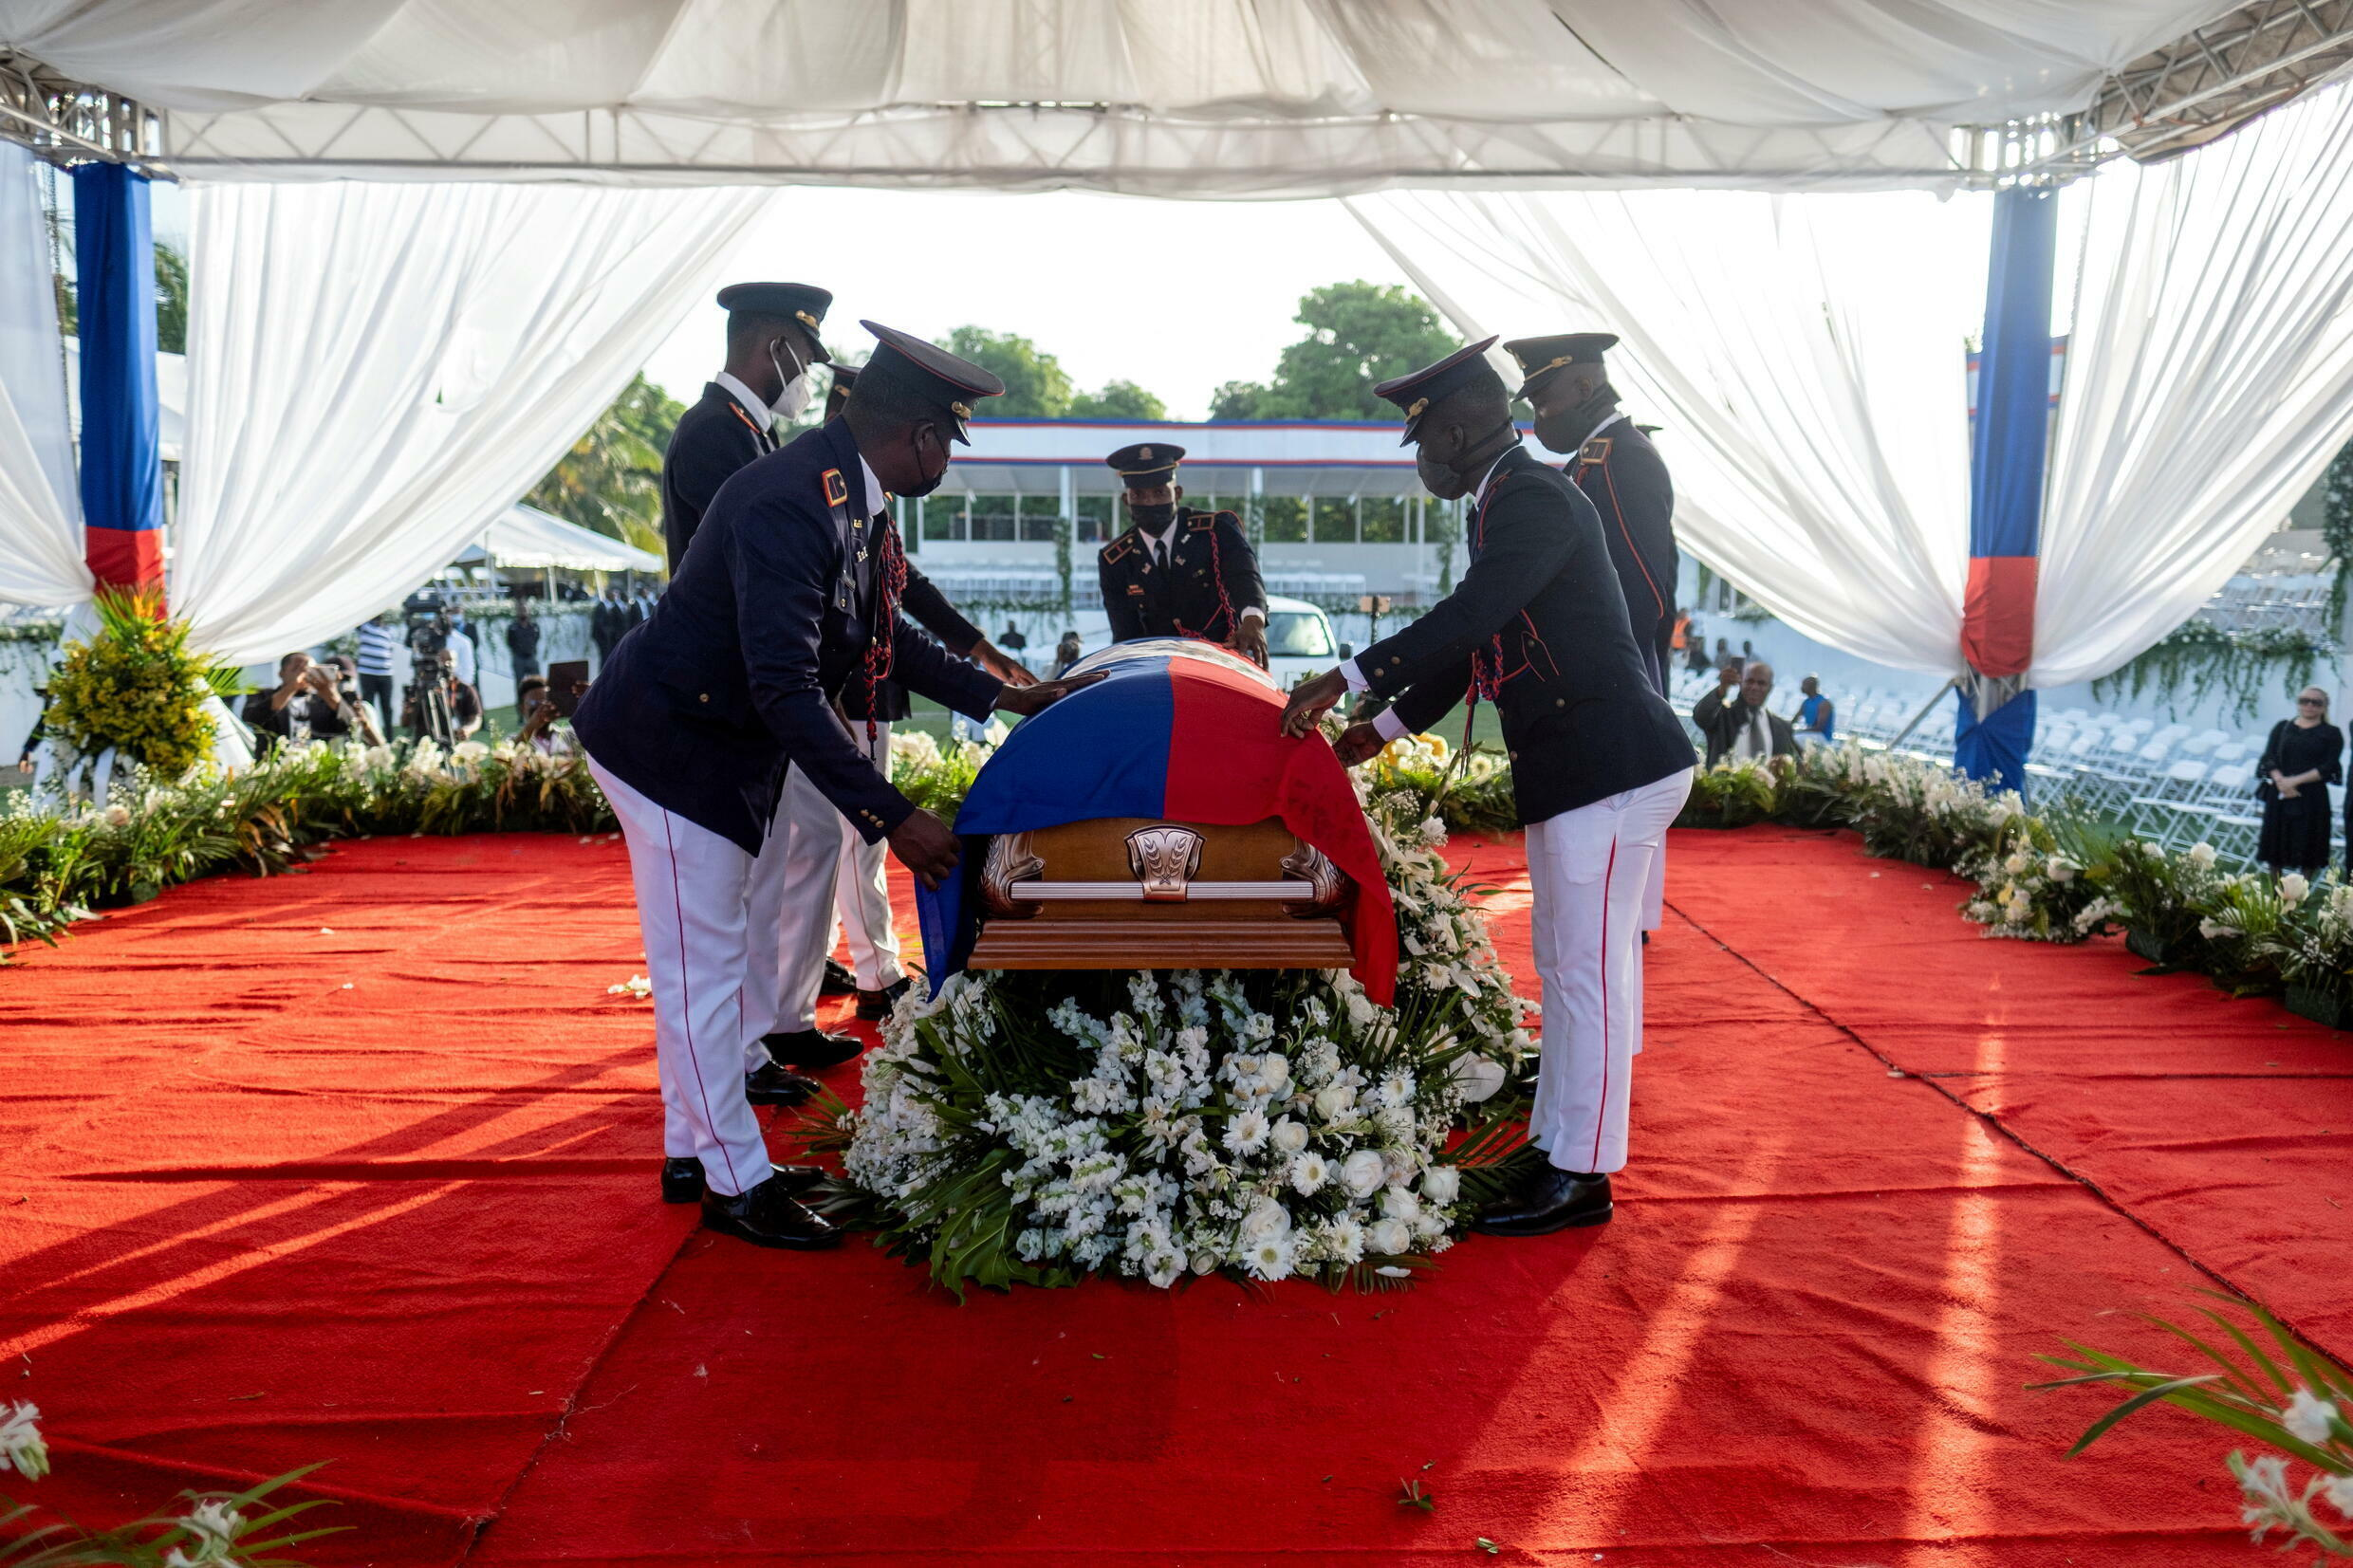 Presidential honor guards place a national flag on the coffin of the late Haitian President Jovenel Moise, Haiti, July 23, 2021.